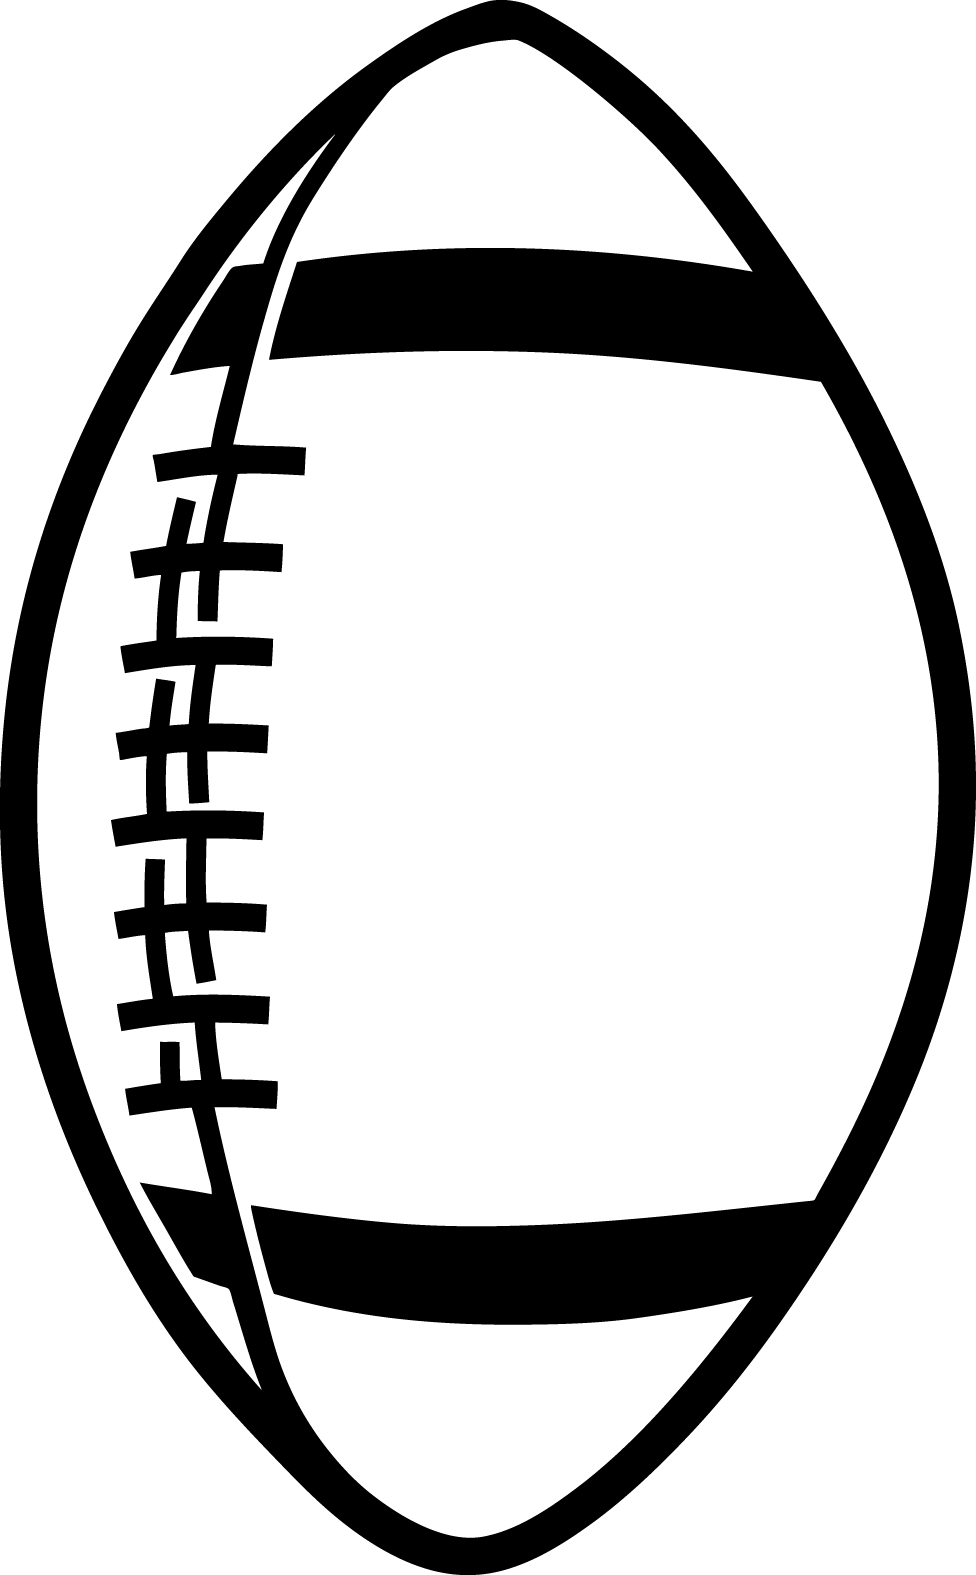 football clipart black and white clipart panda free free football clipart border free football clipart washington redskins